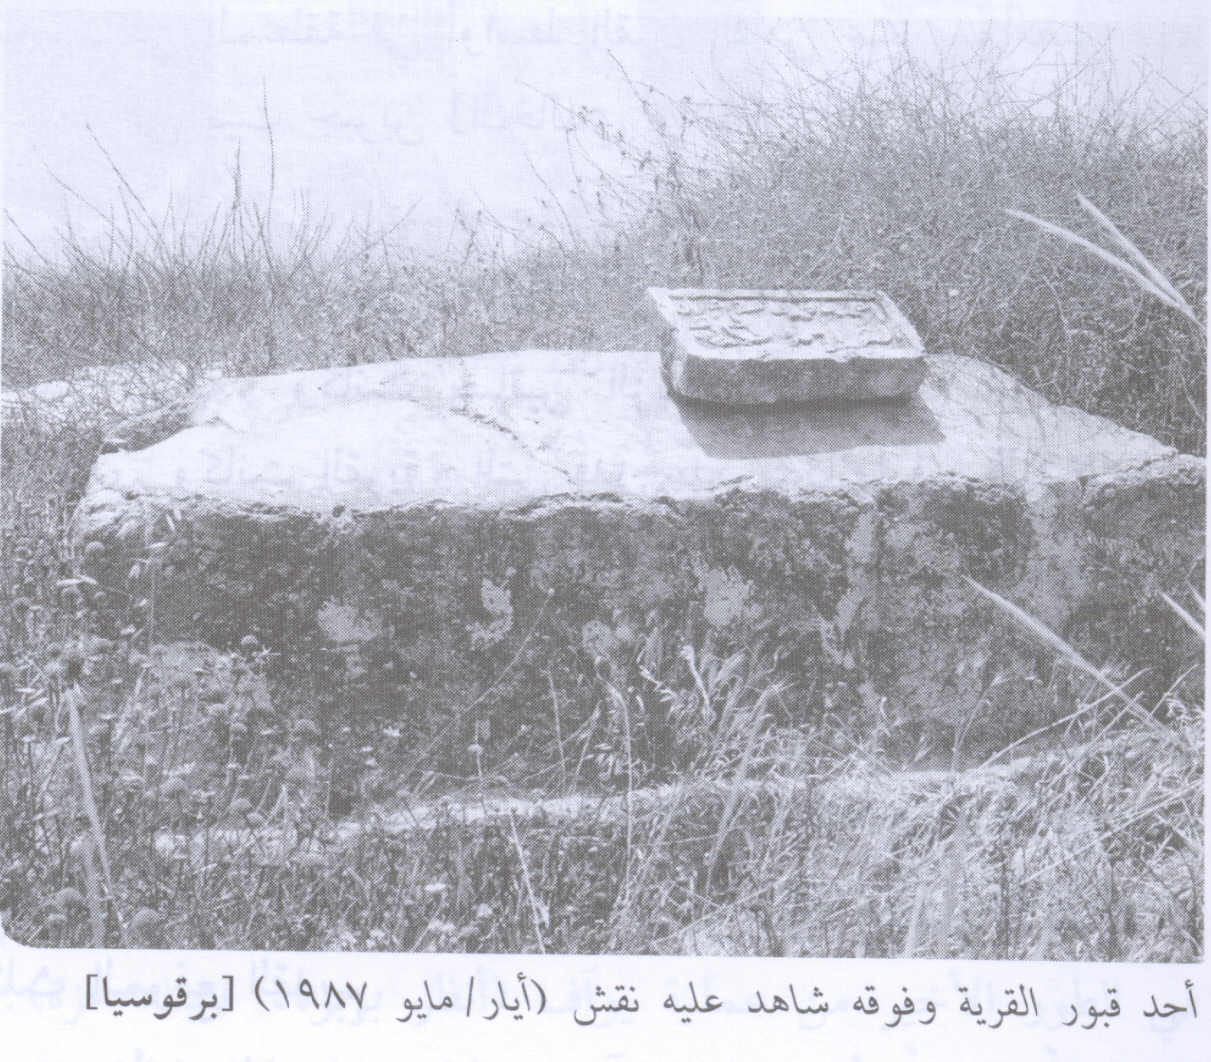 Barqusya - بركوسيا (برقوسية) : An Inscribed Tombstone On A Village grave In 1987